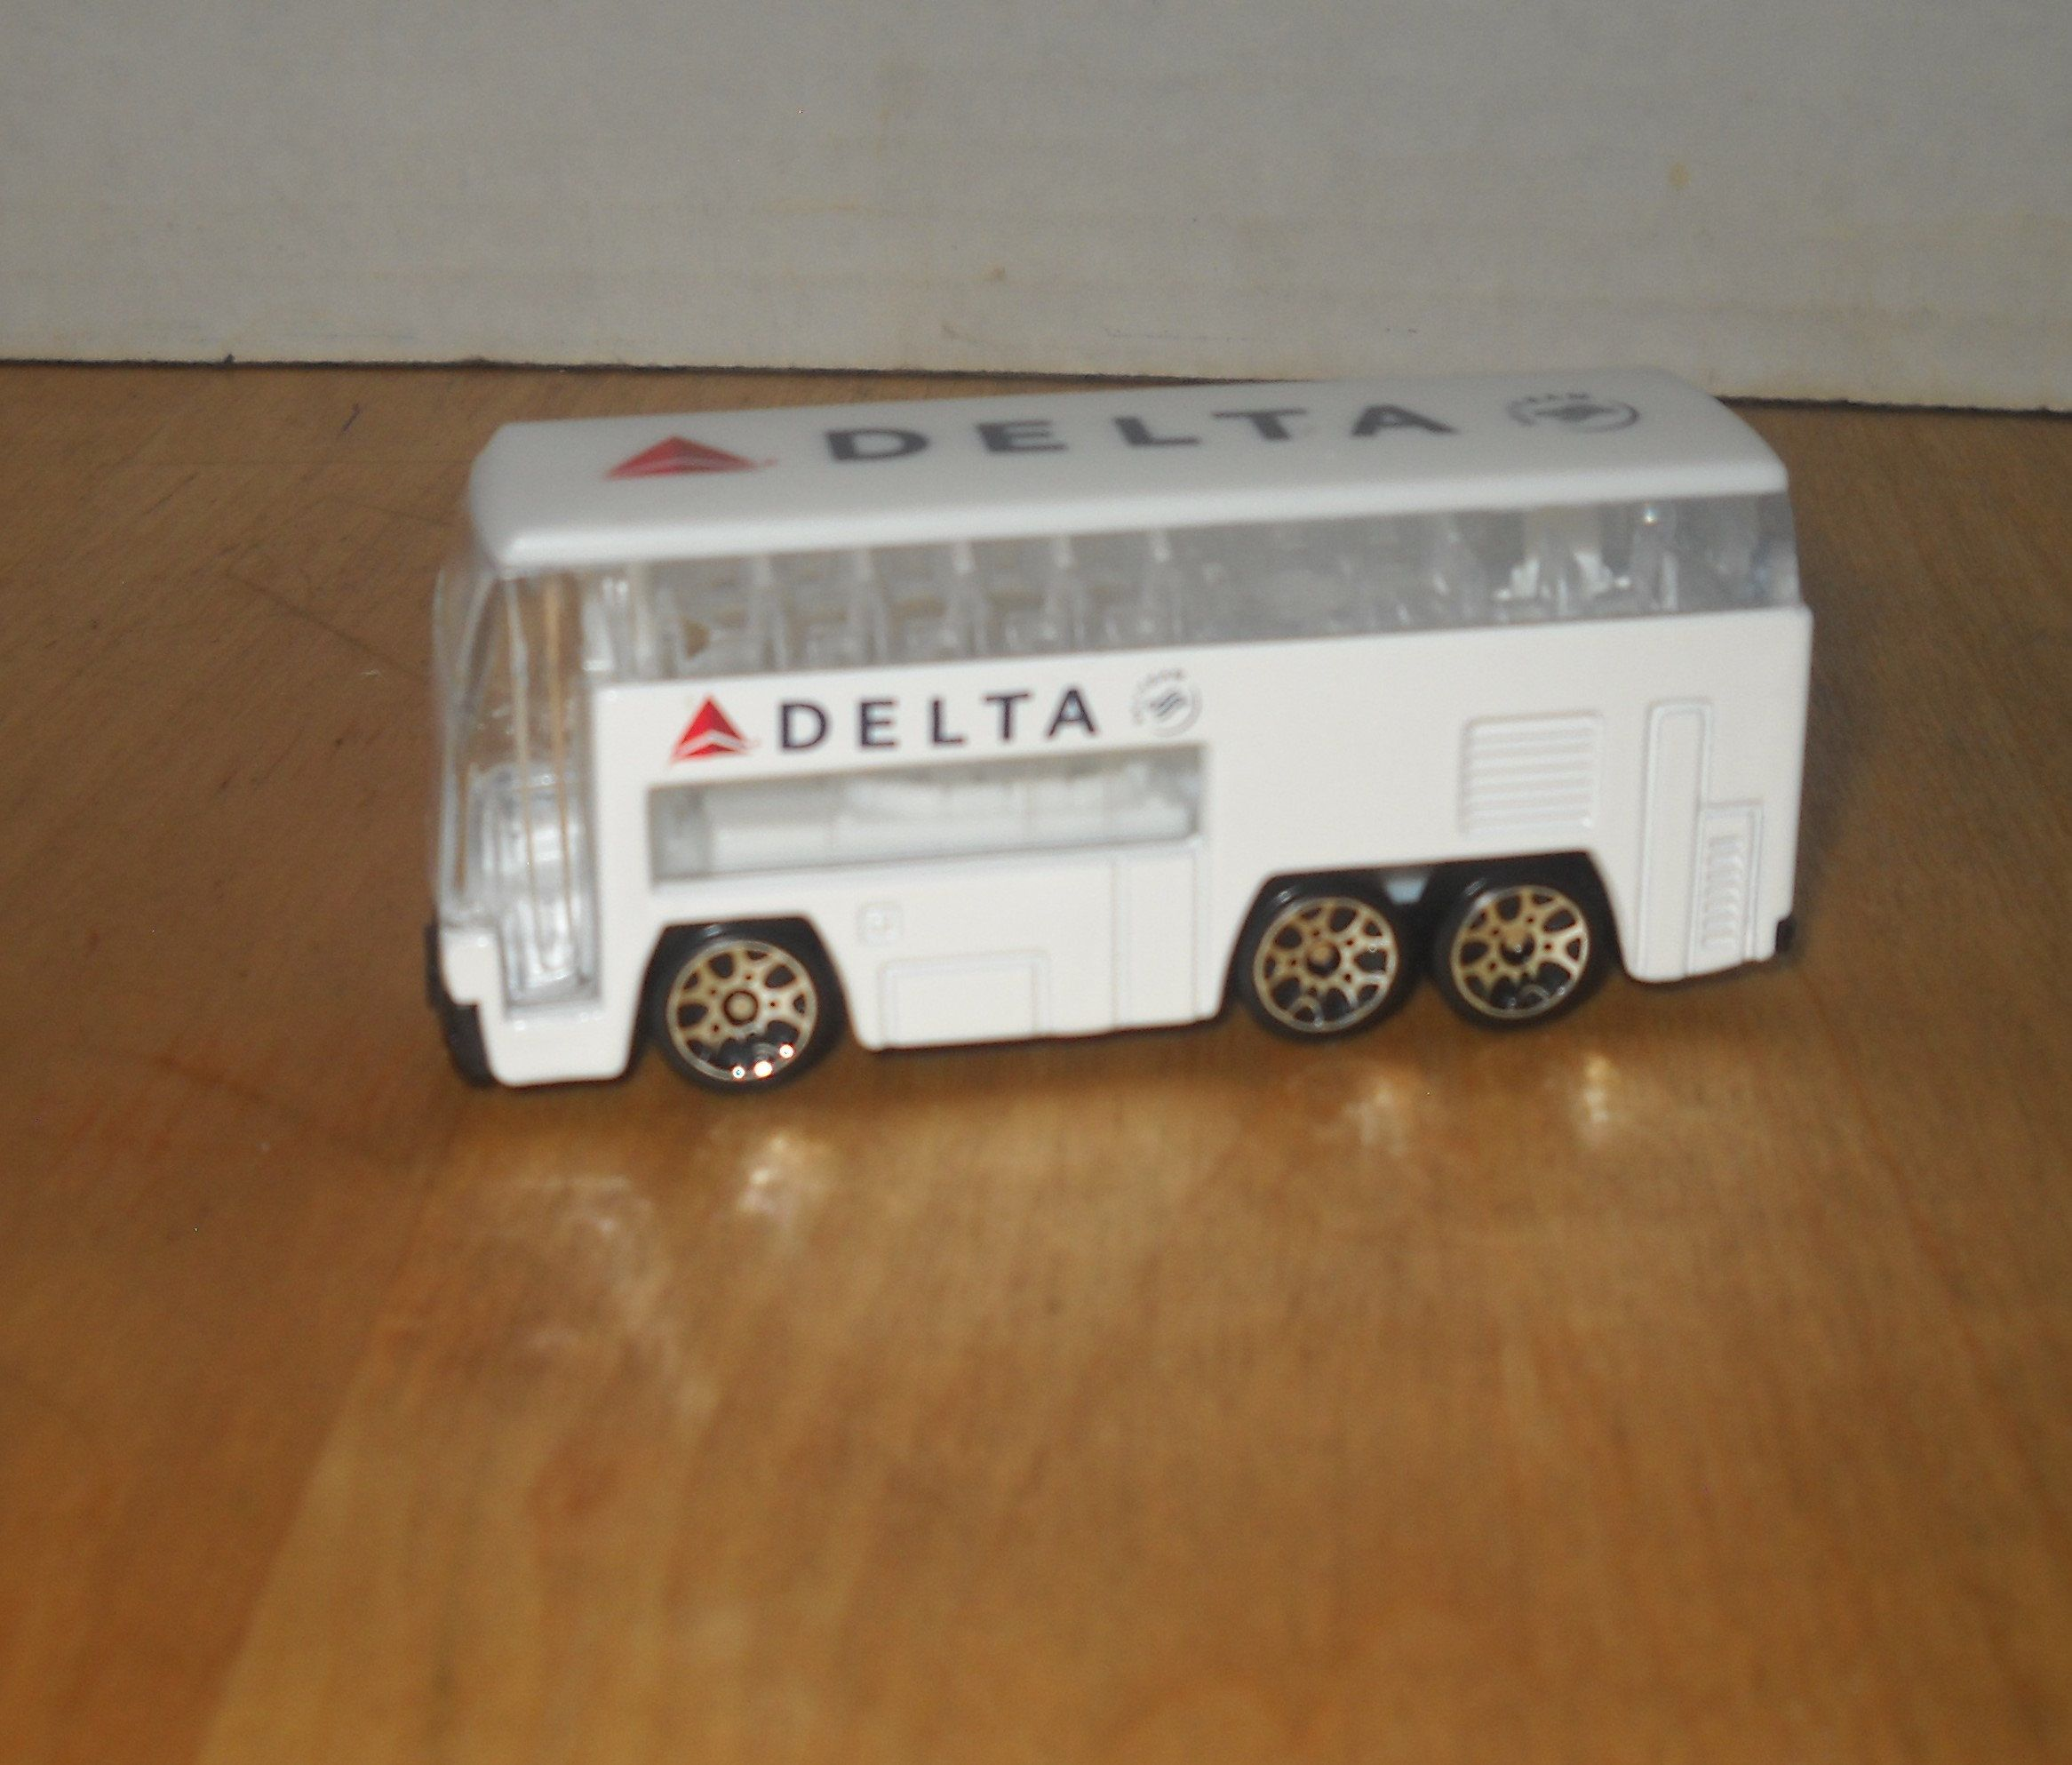 Real Toy 1 64 White Bus 3 Axles Delta Airlines Diecast Plastic Windows Like New In 2020 Delta Airlines Toys Plastic Windows